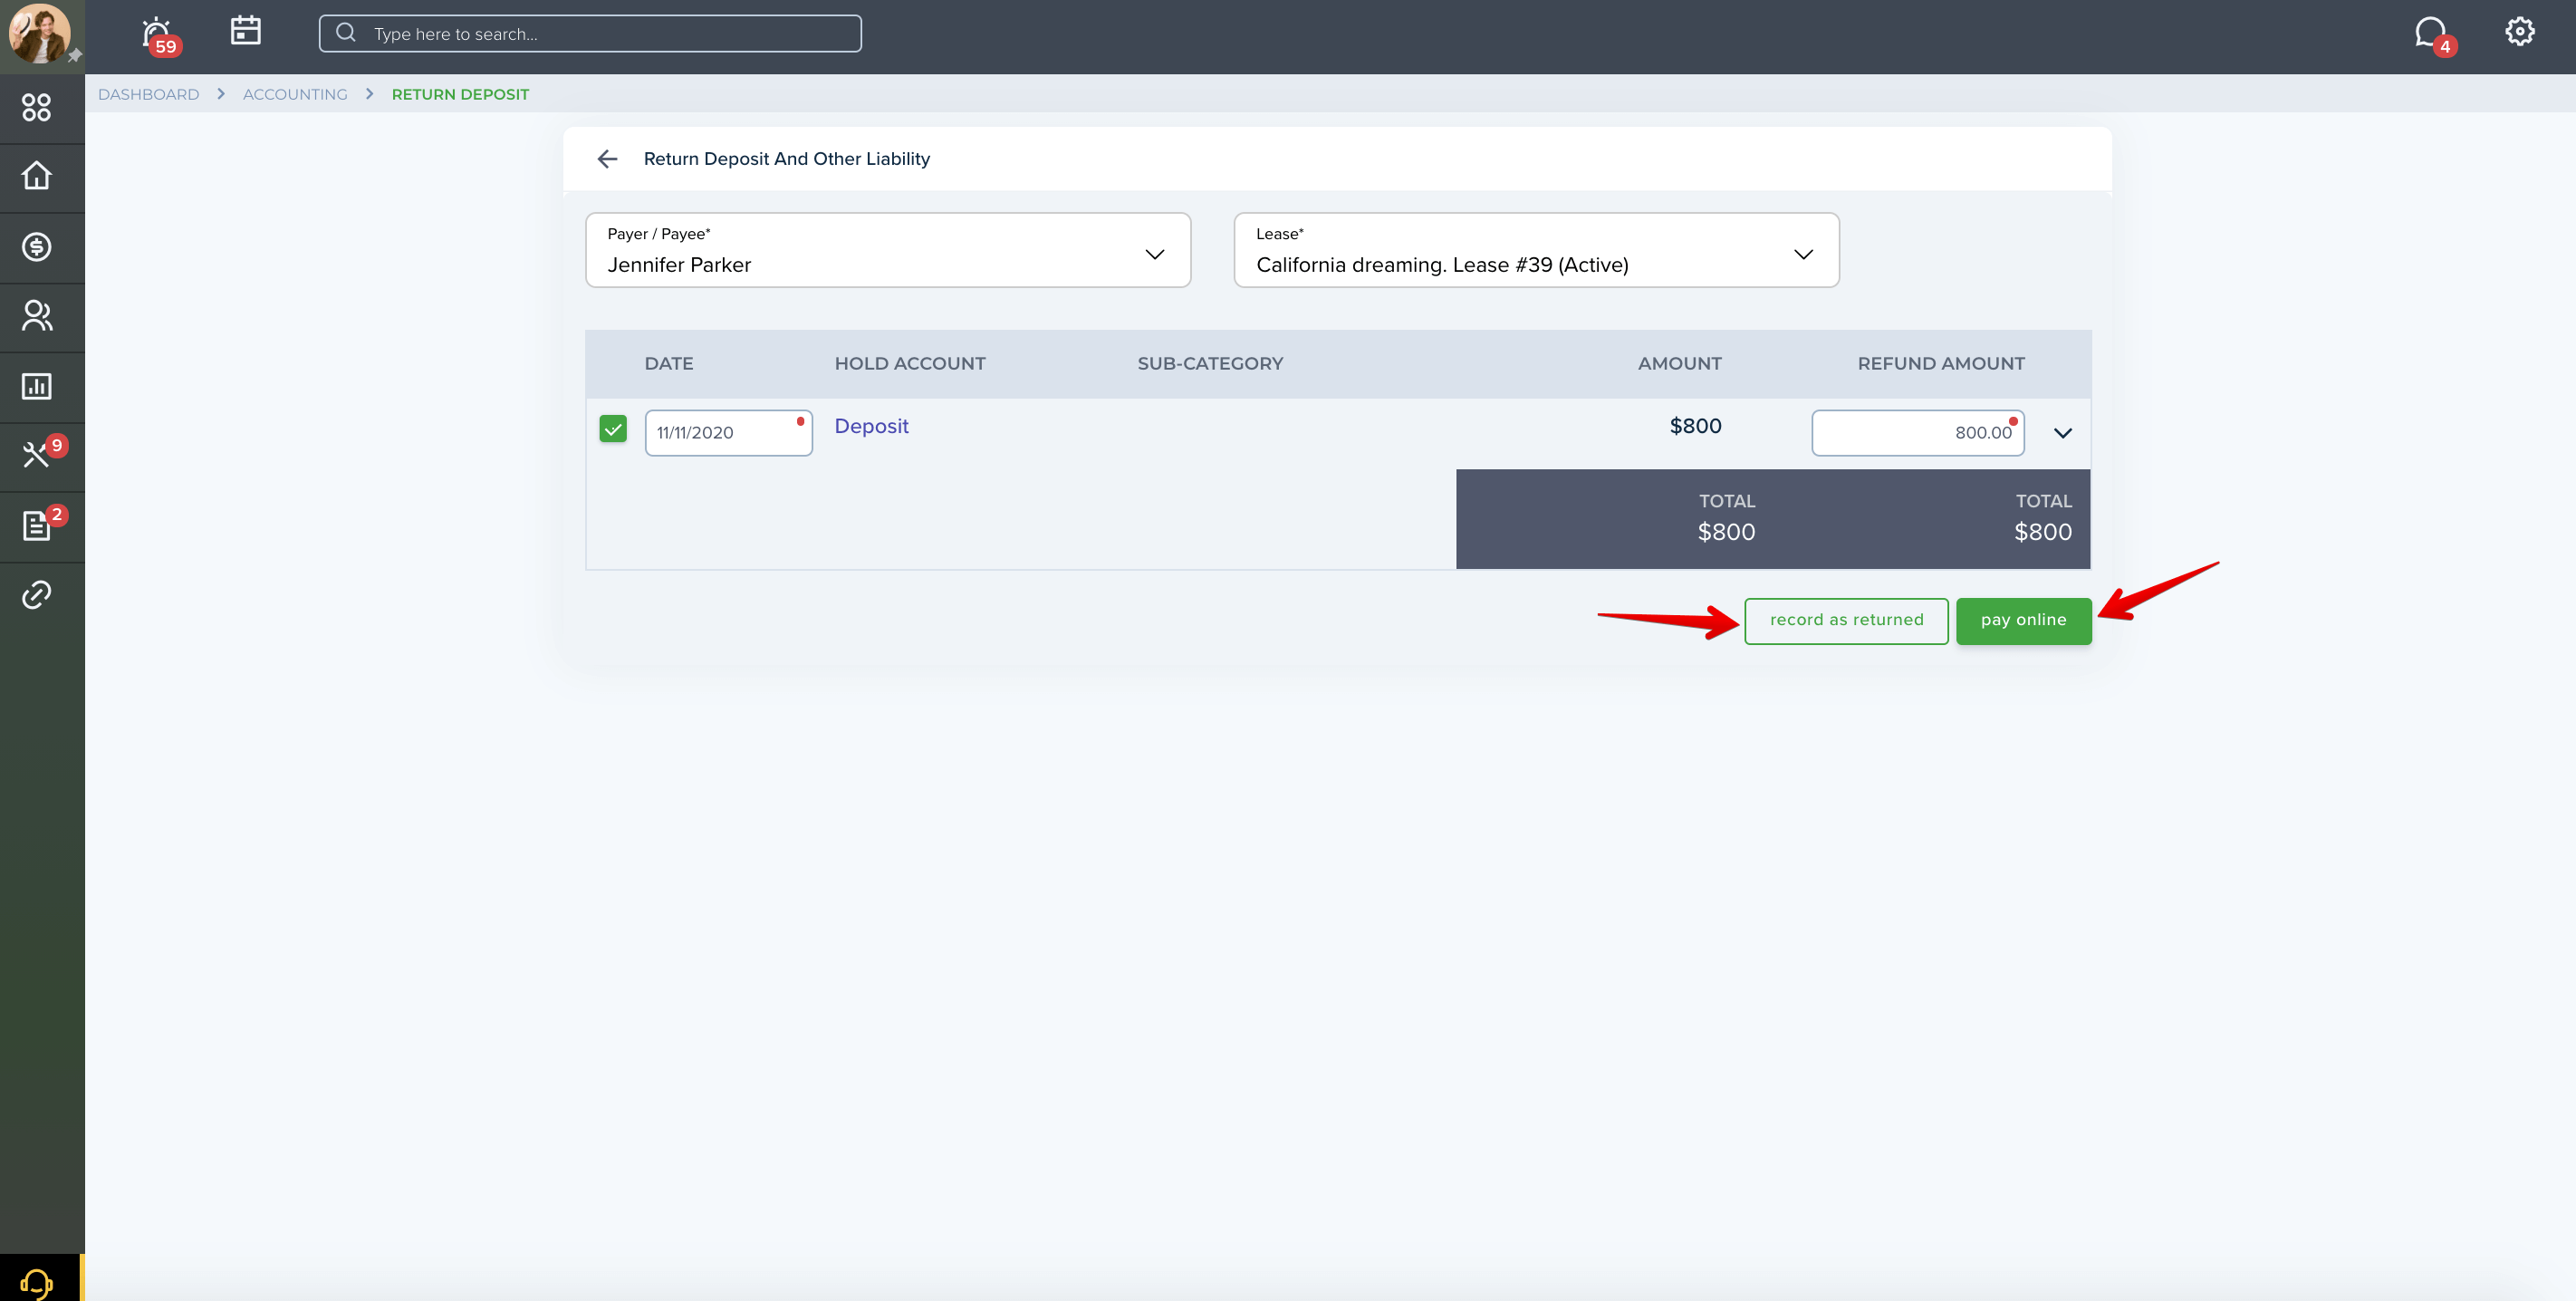 Accounting page in your TenantCloud account